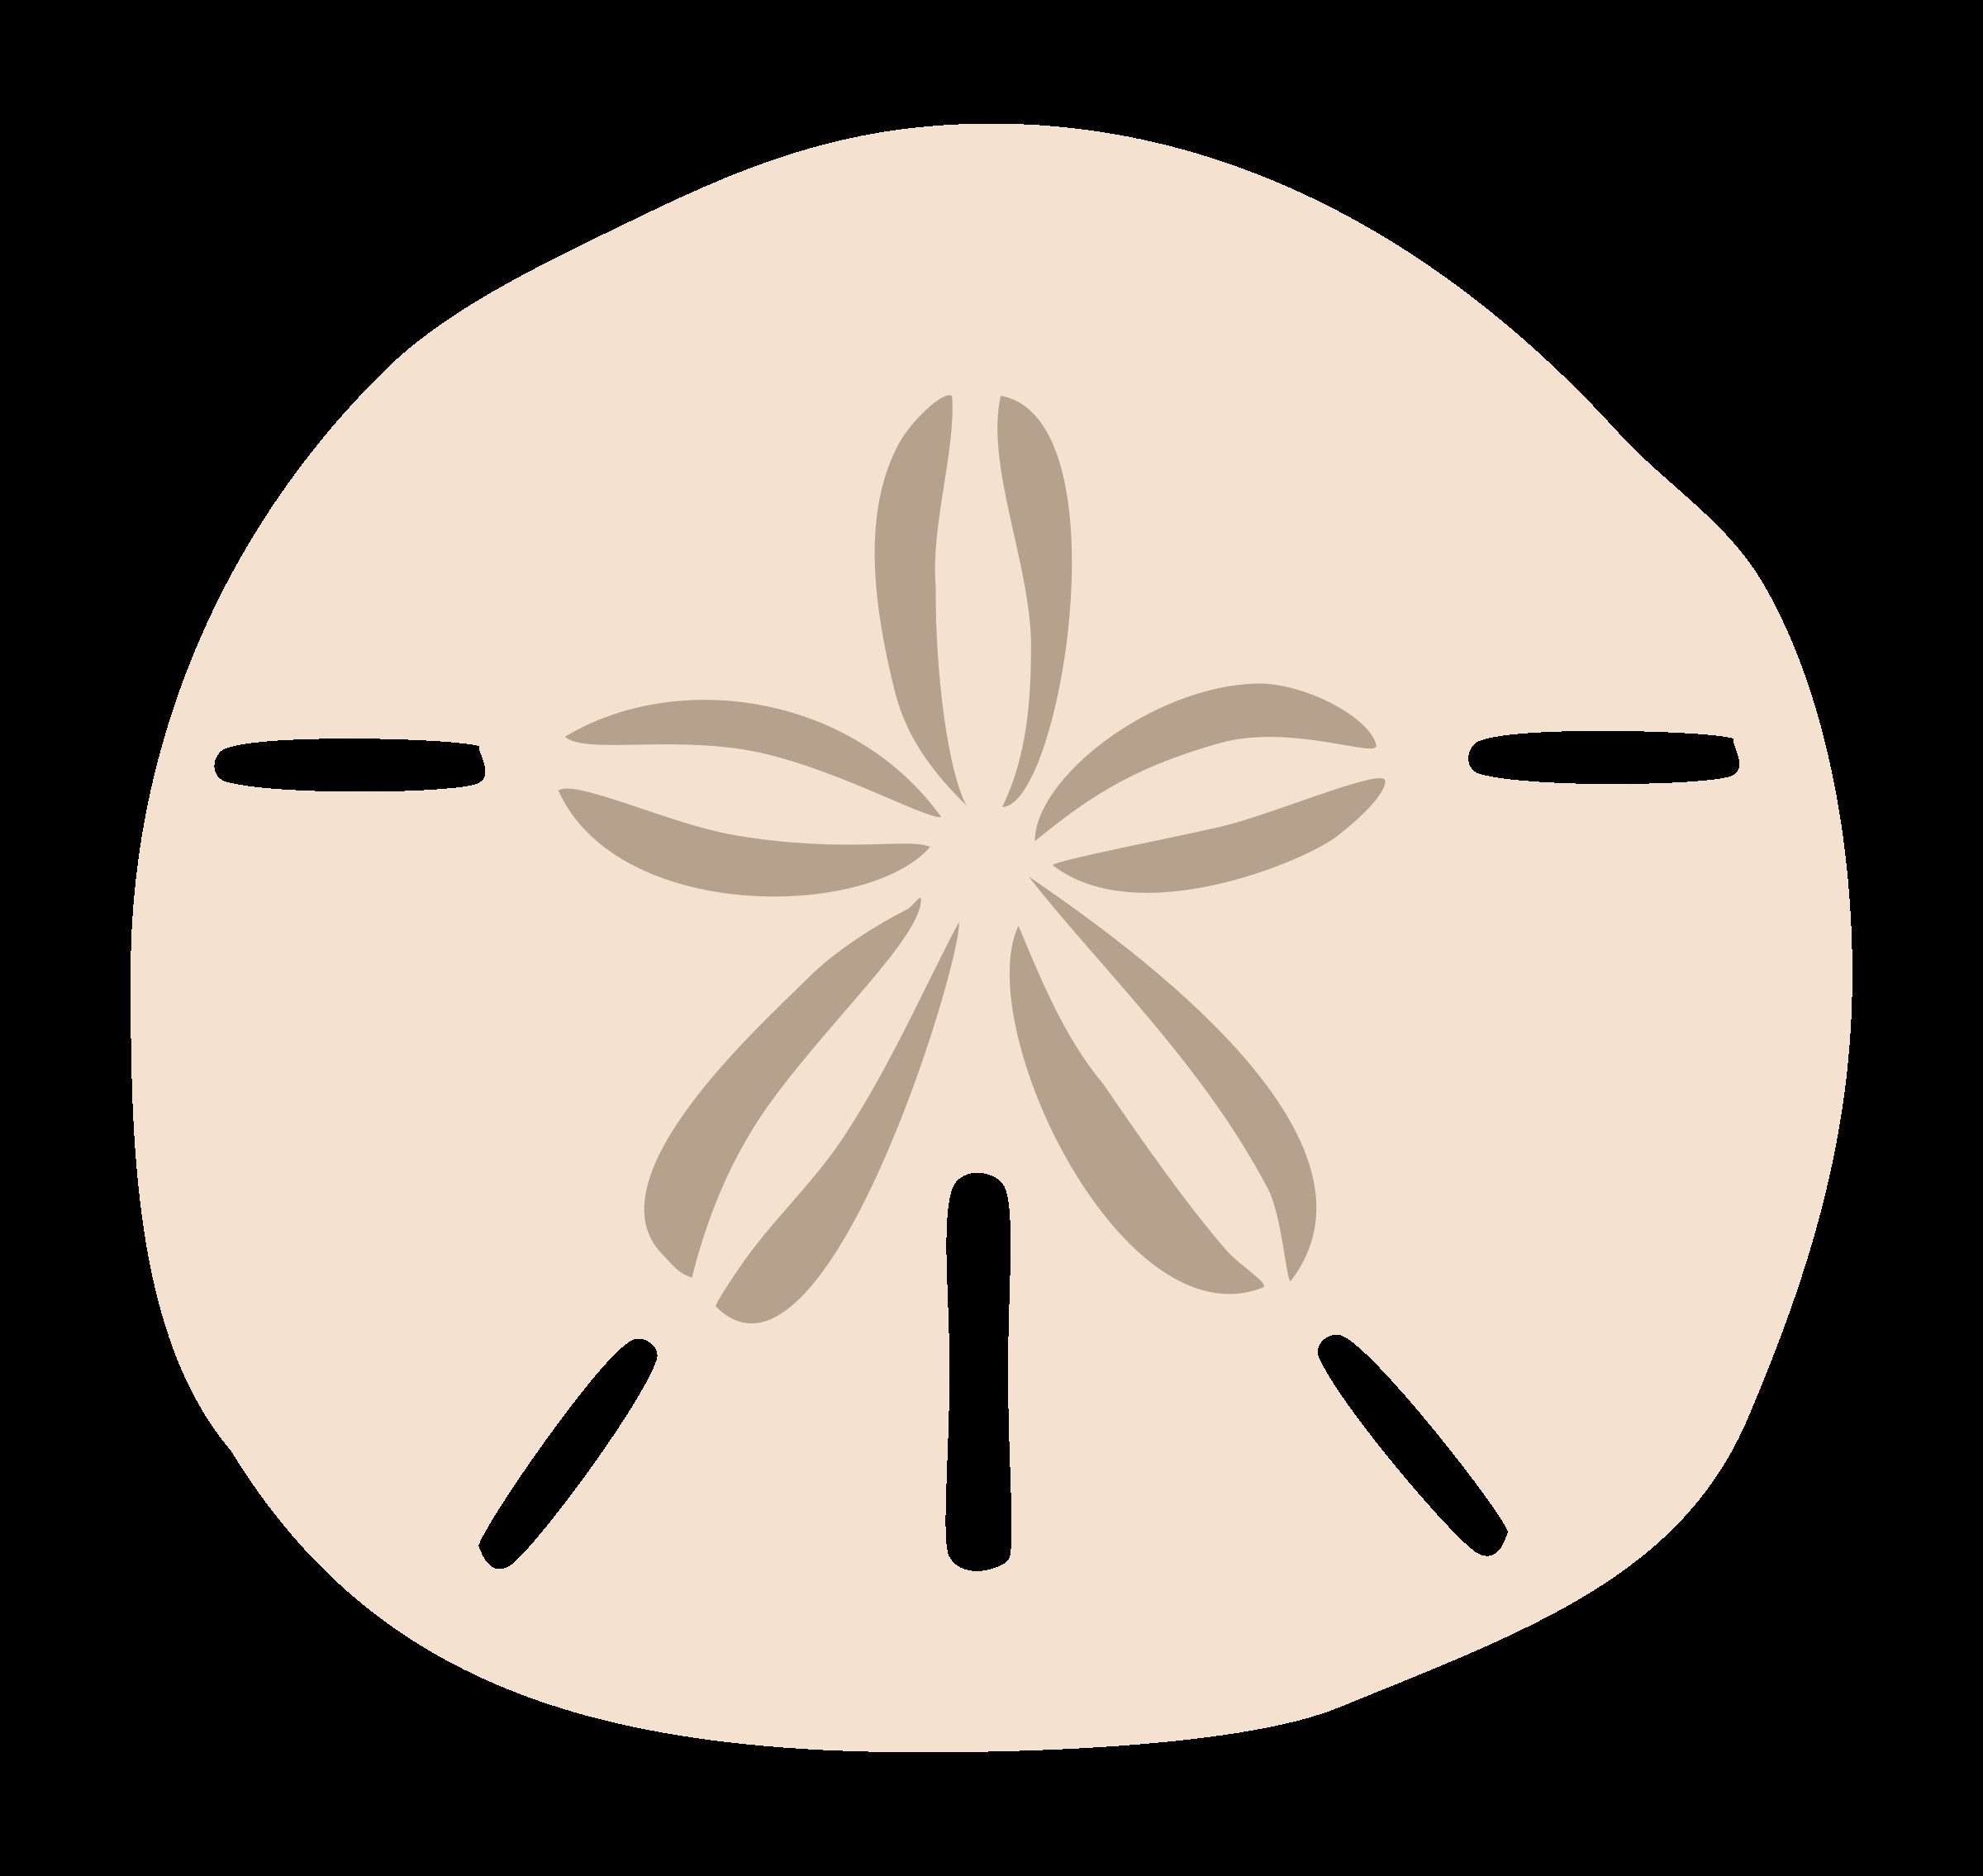 sand dollar clipart at getdrawings com free for personal use sand rh getdrawings com sand dollar clipart free Sand Dollar Outline